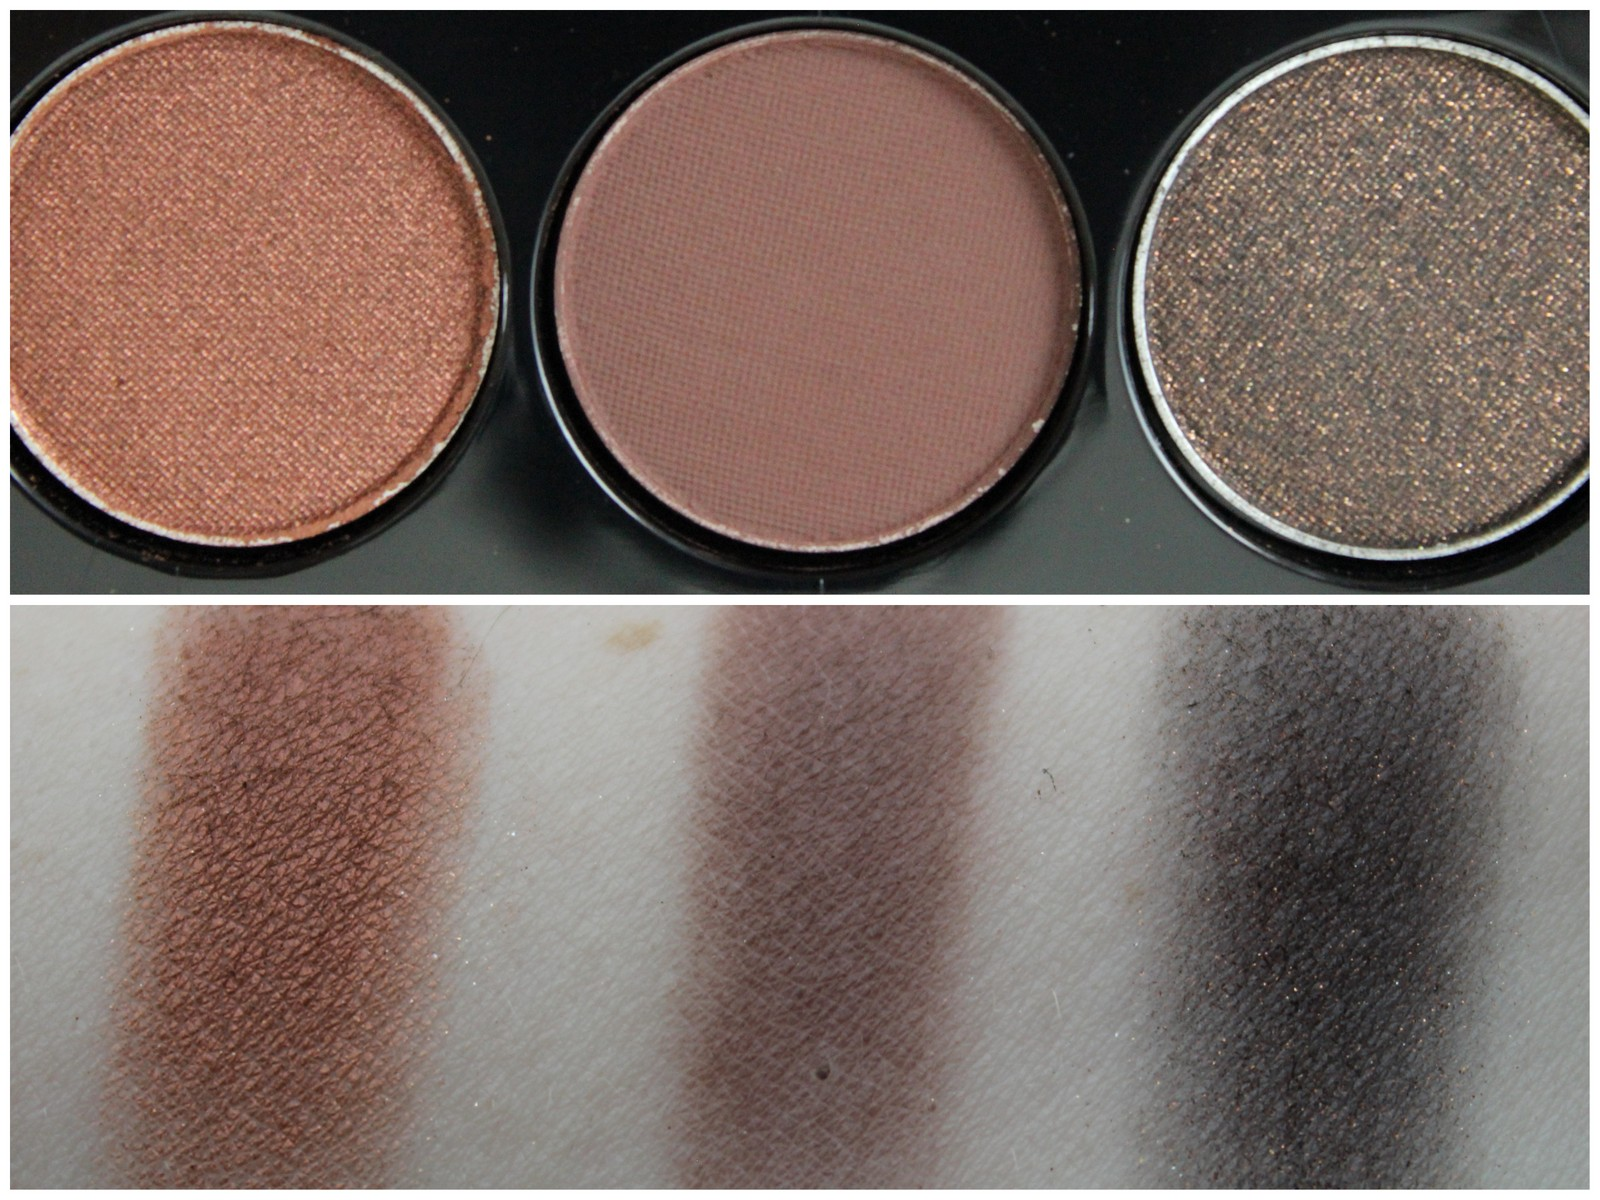 best mac eyeshadow for all over lid - elementsmoodgood's blog